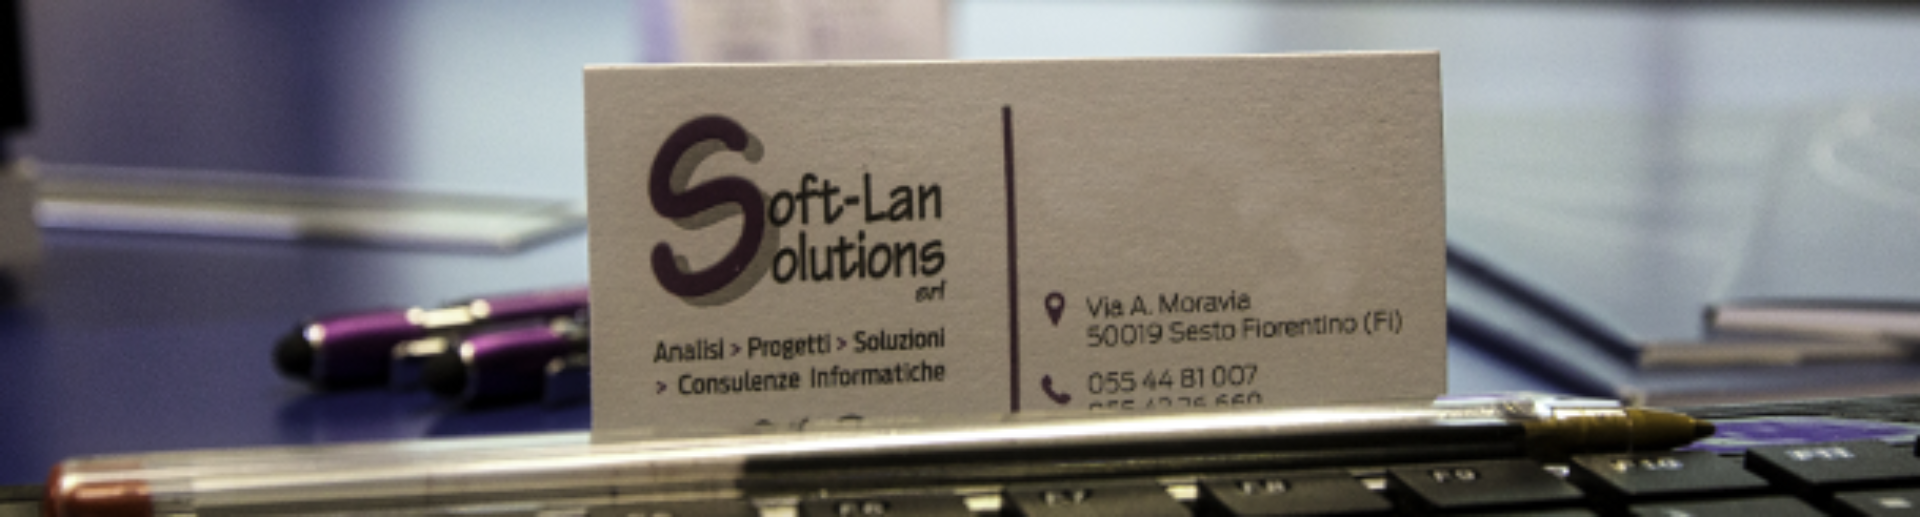 Soft-Lan Solutions